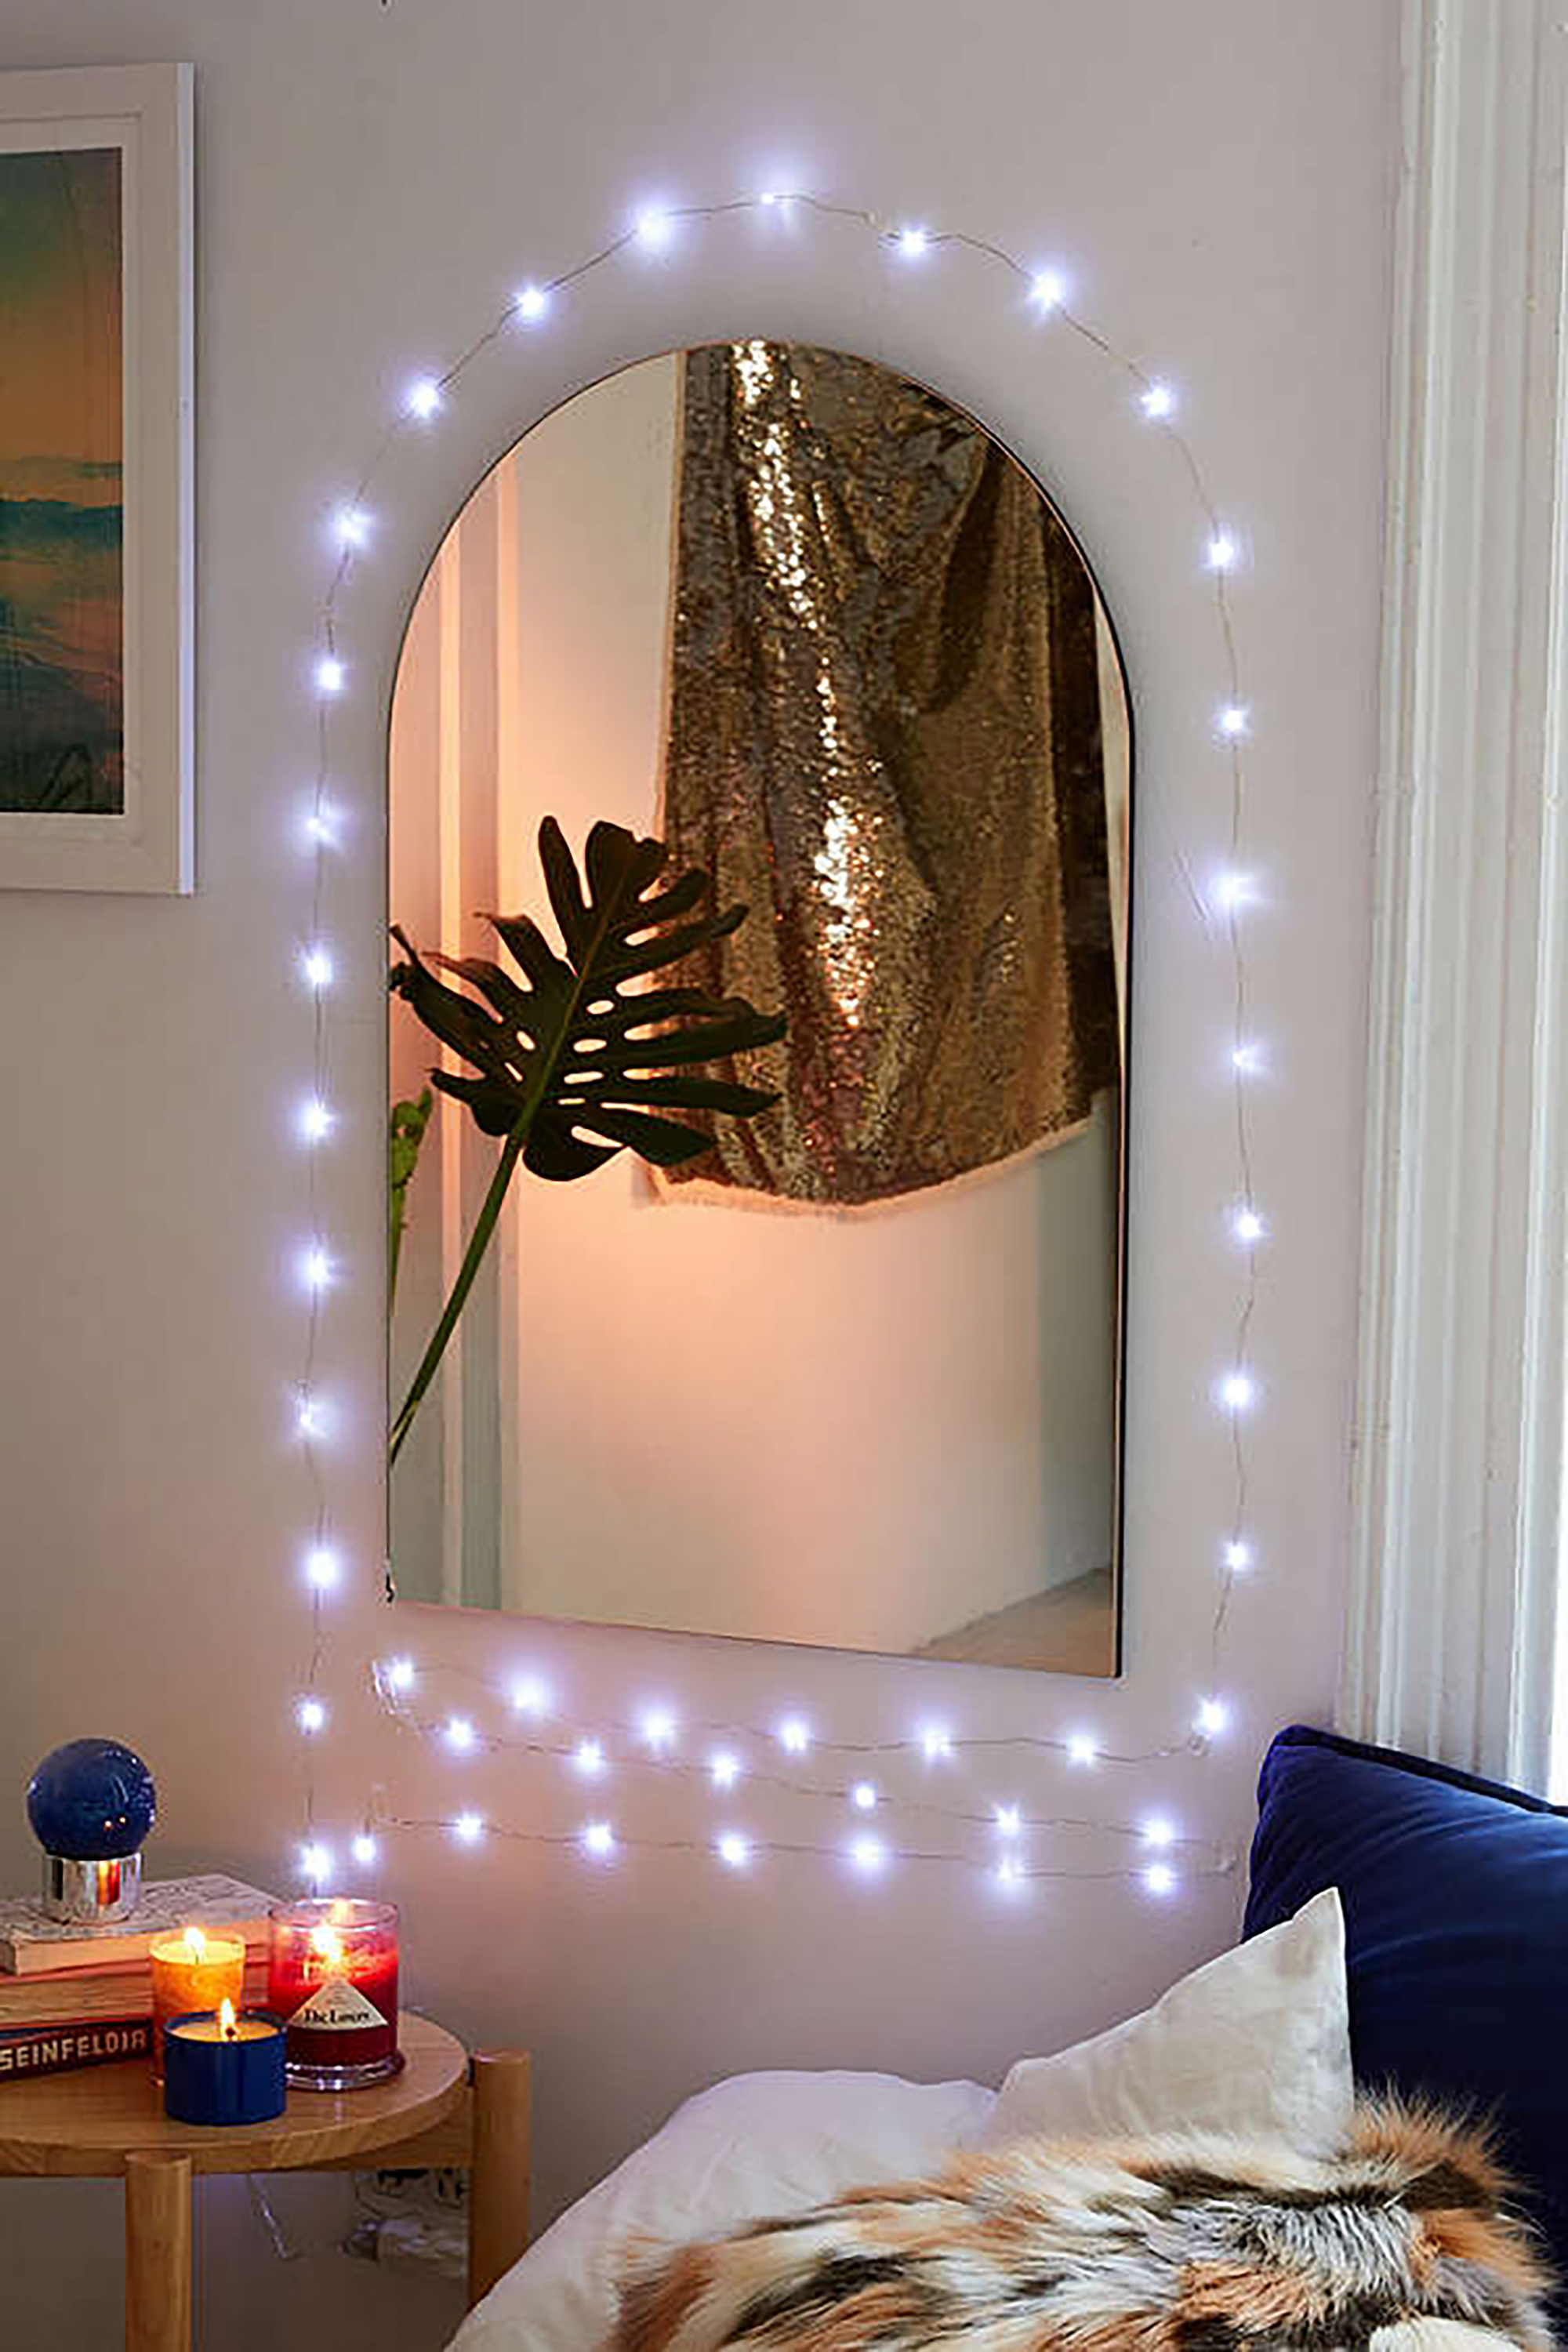 24 Ways To Decorate Your Home With Christmas Lights